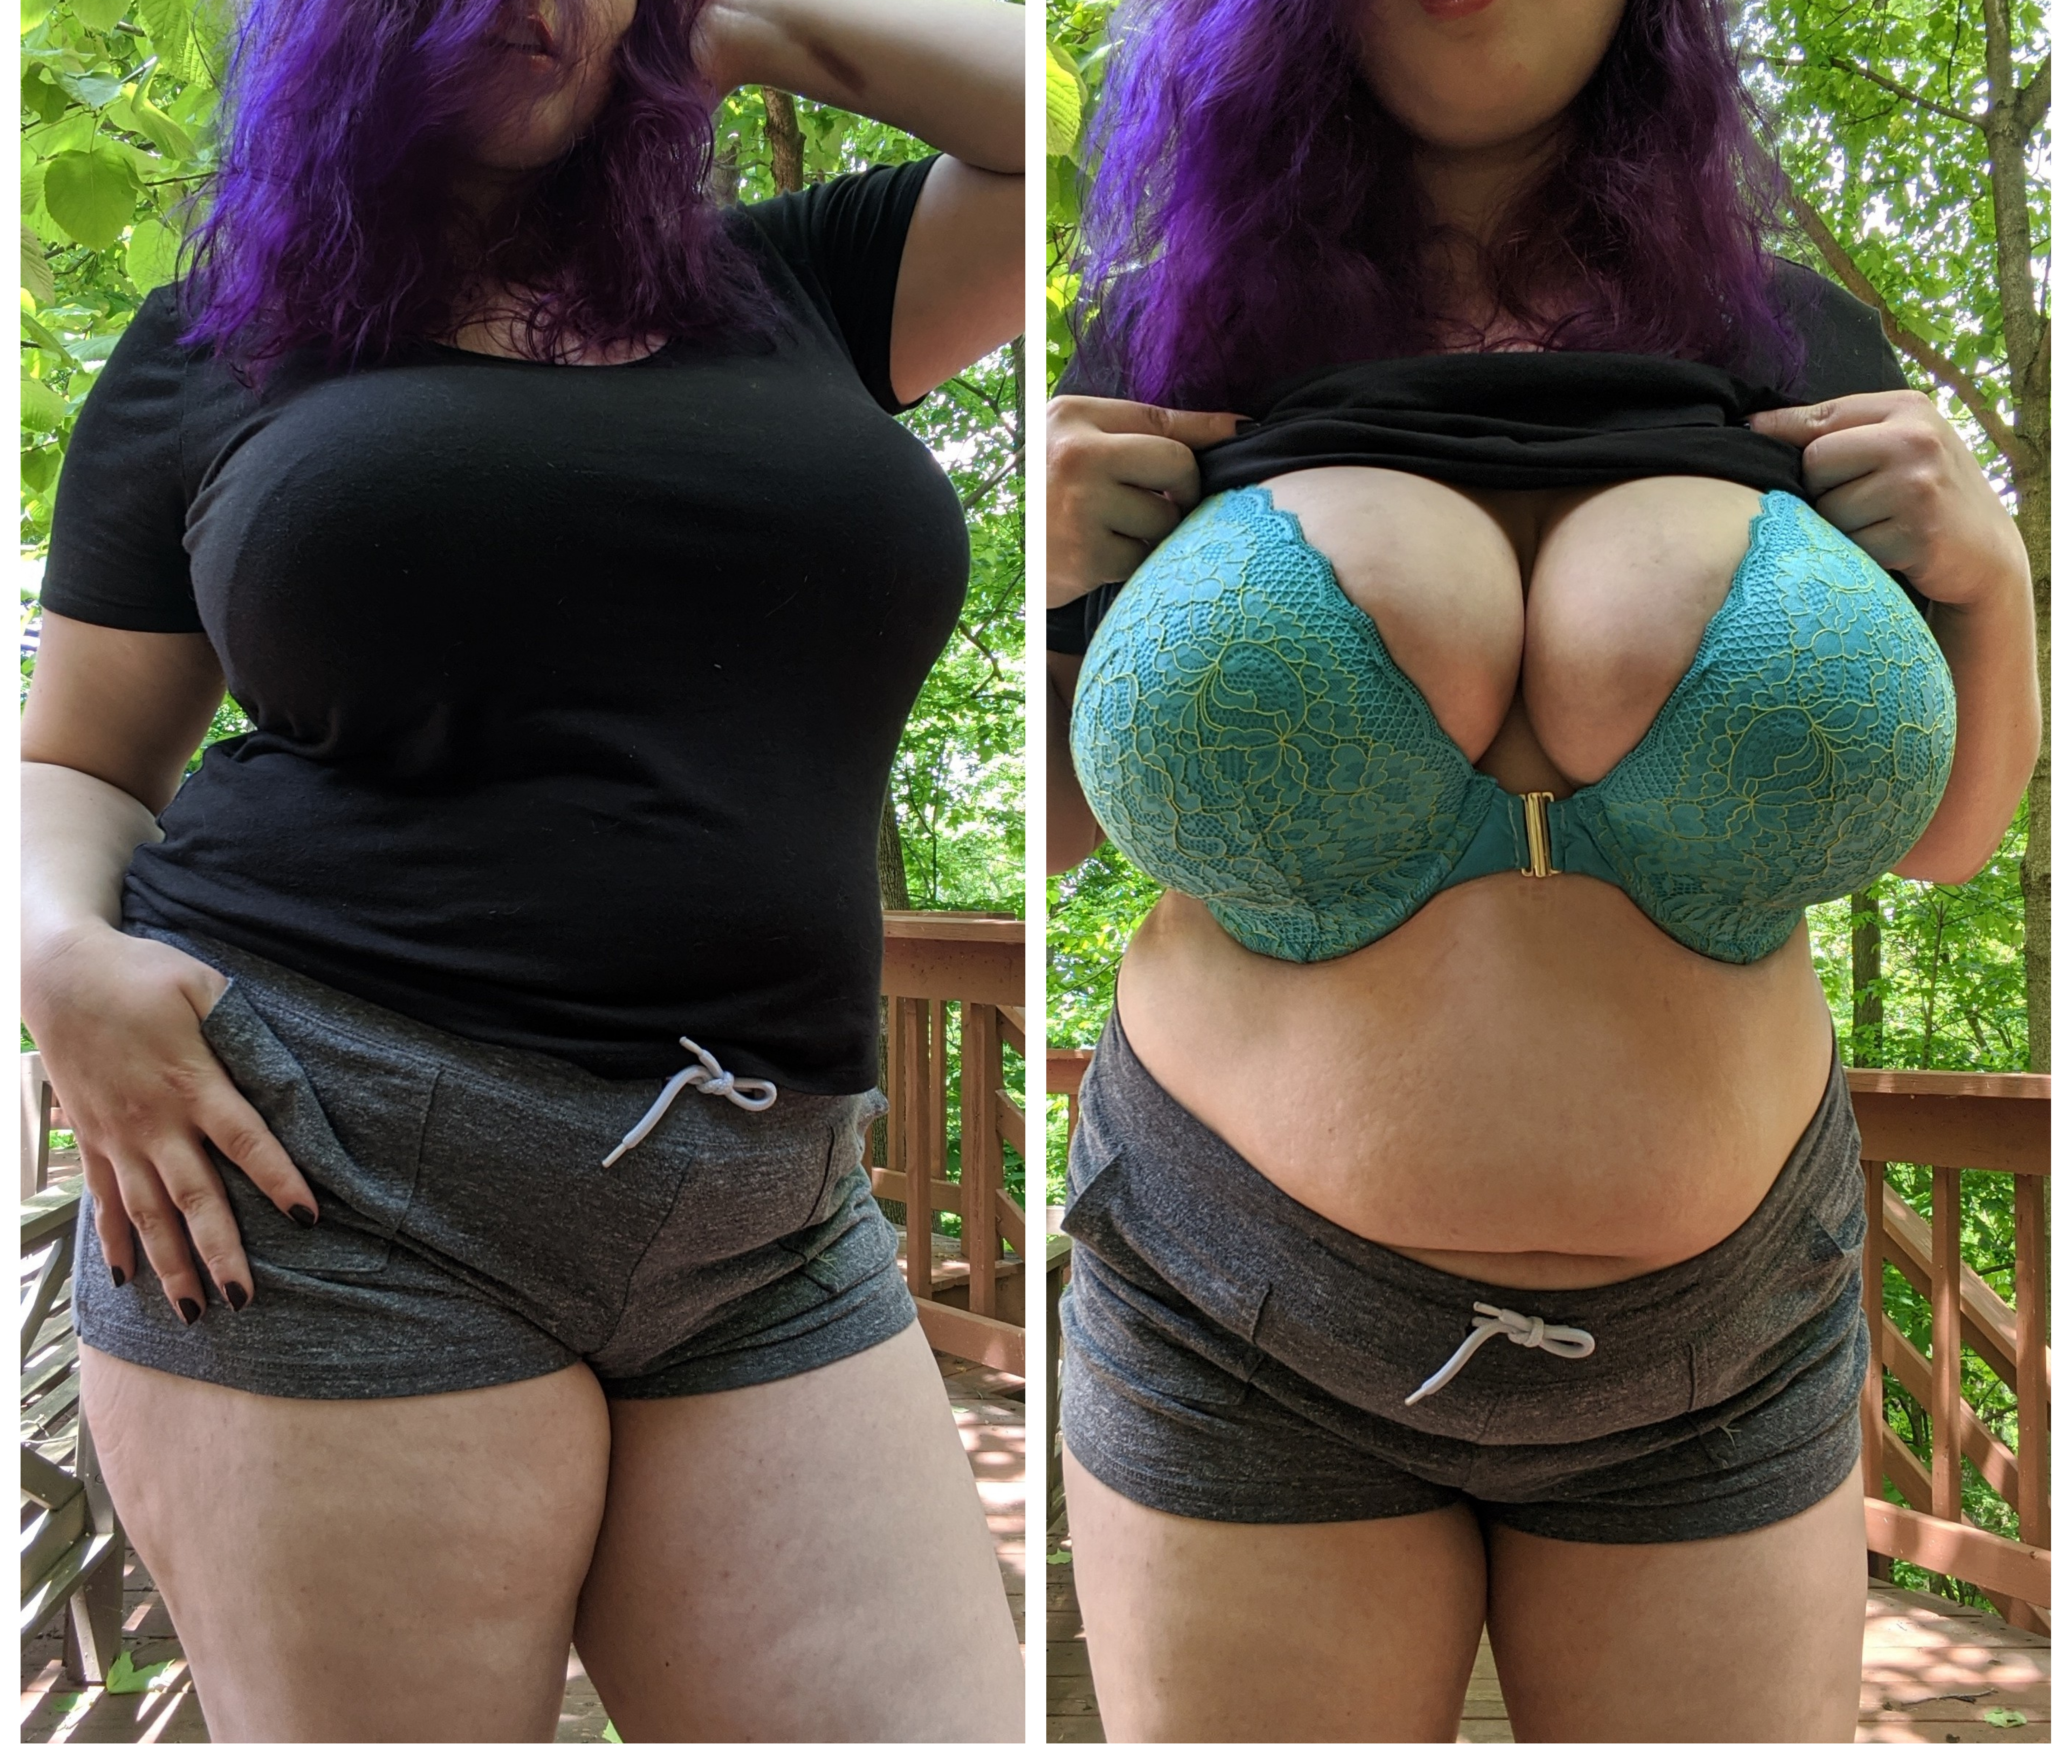 Bbw Nude Pic Post